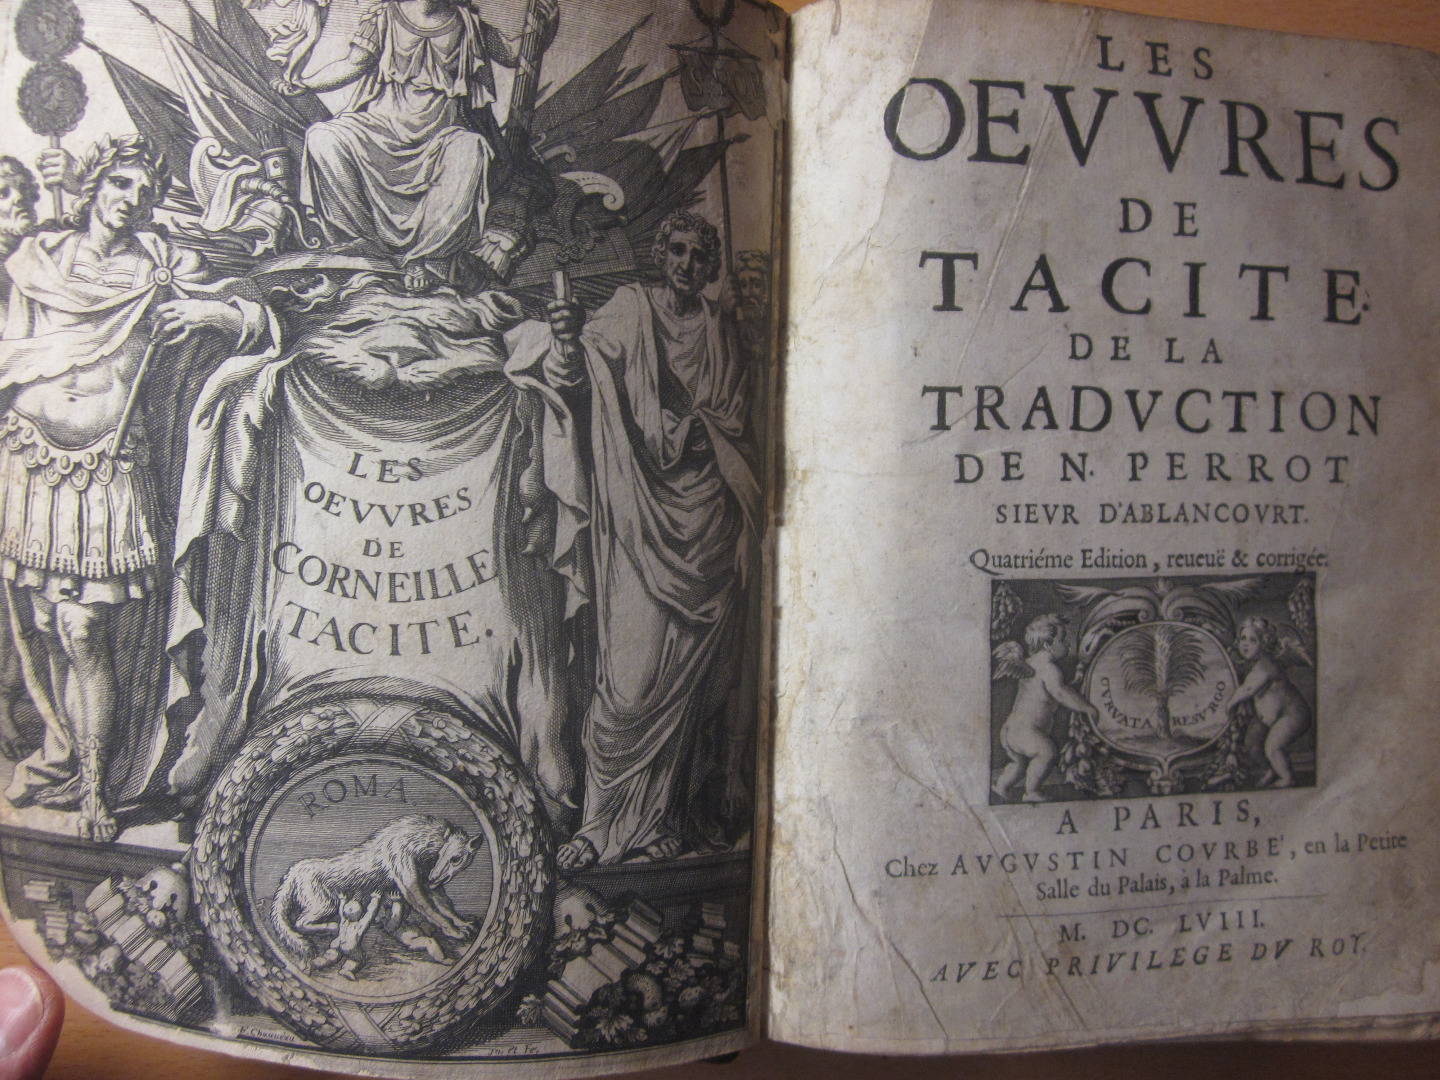 Fourth Edition of the work of Tacite 1658